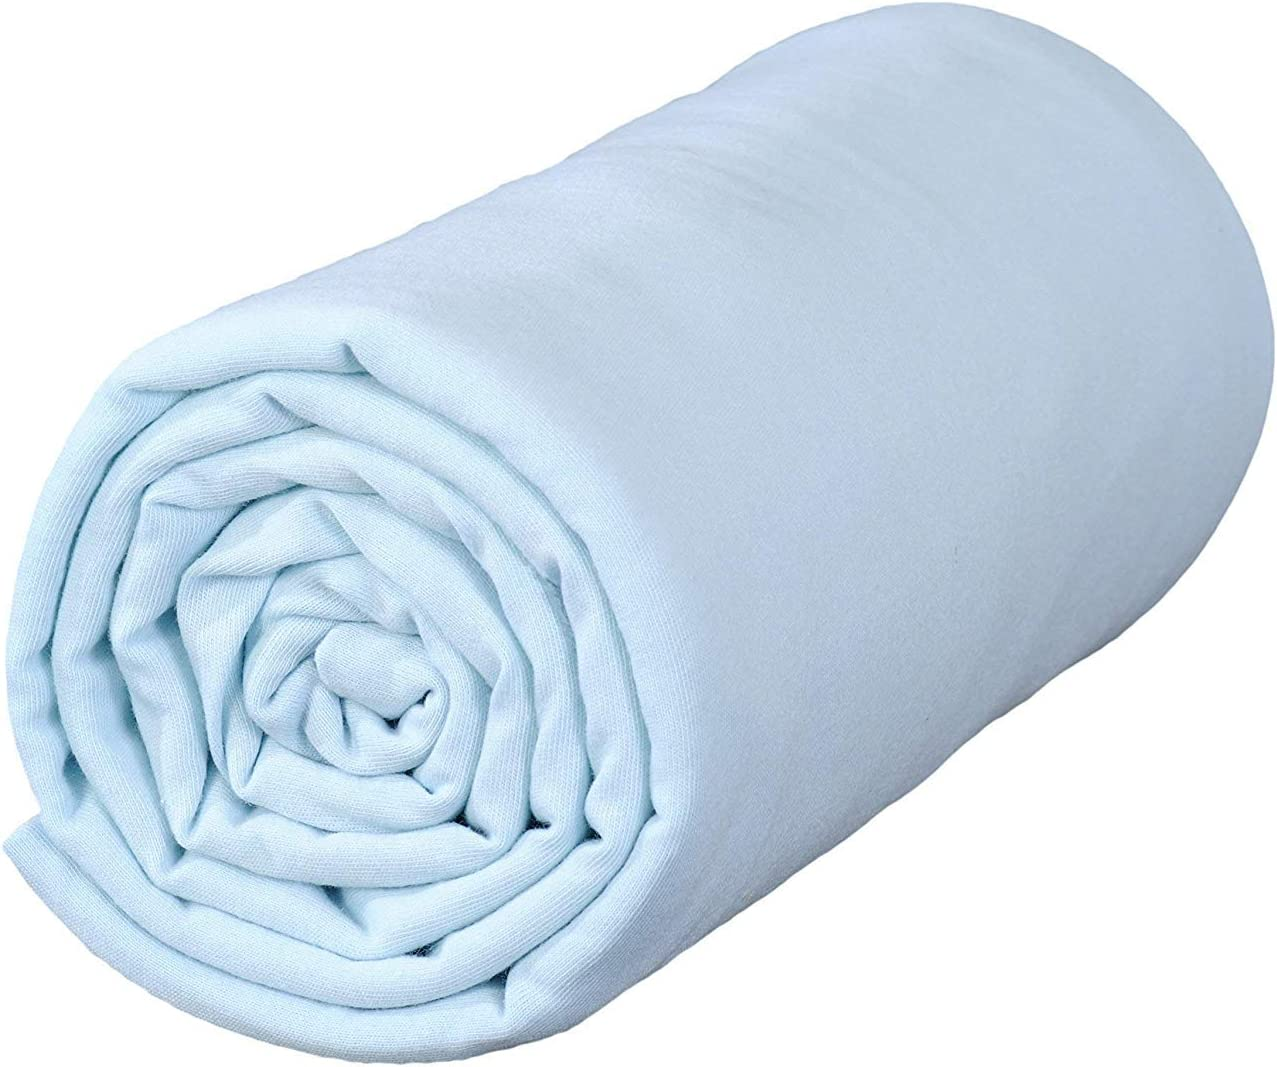 70x140 cm 100/% Organic Cotton Off-White//Blue Ptit Basile High Quality Combed Cotton Lot of 2 cot Bed Jersey Fitted Sheets